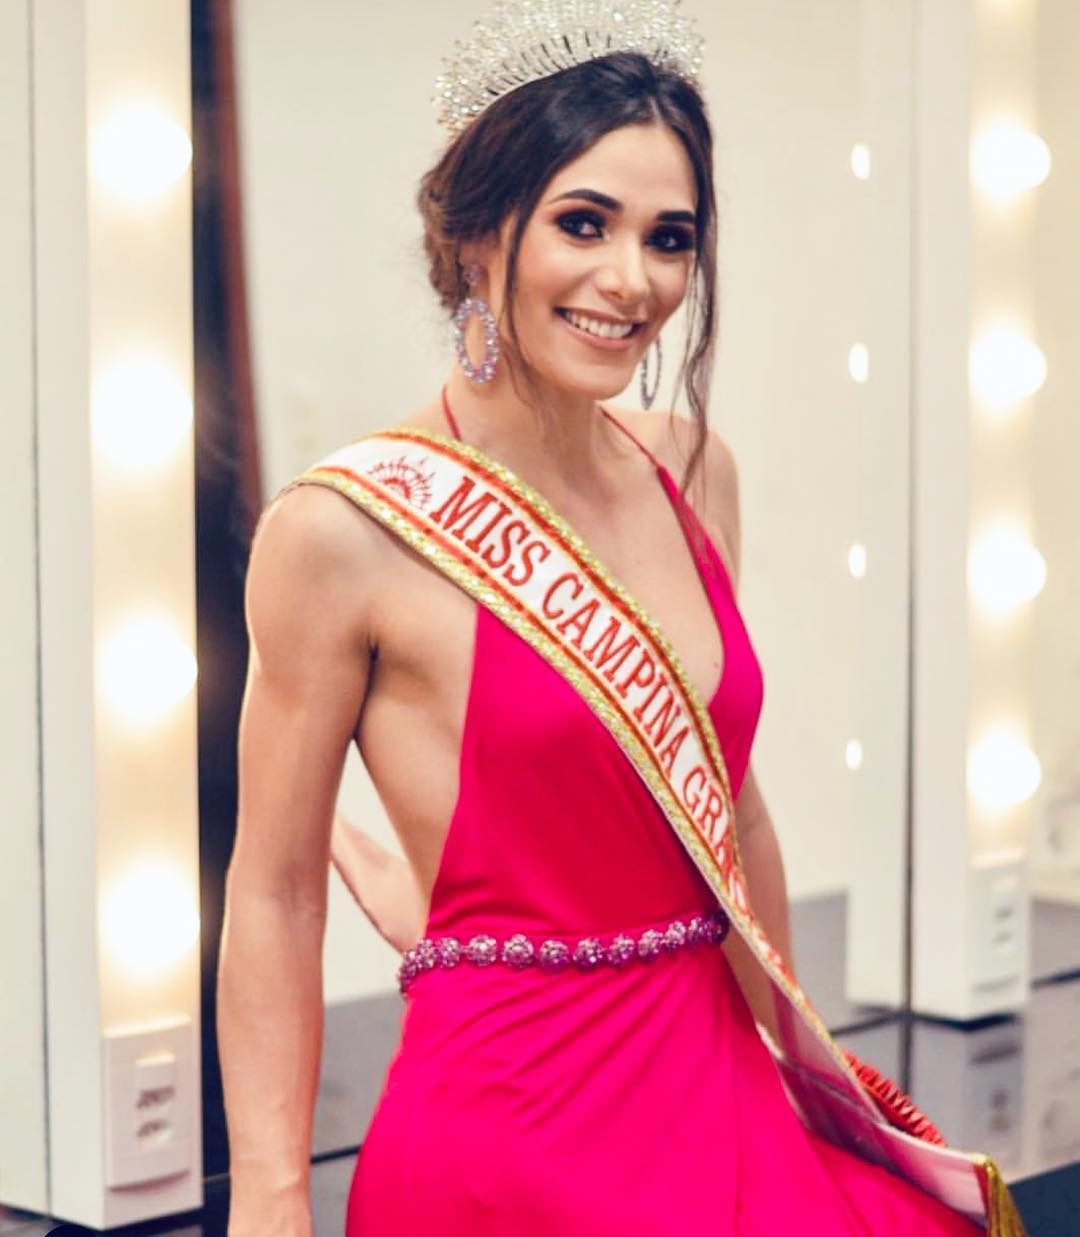 lala guedes, miss grand brasil 2020. 47694110